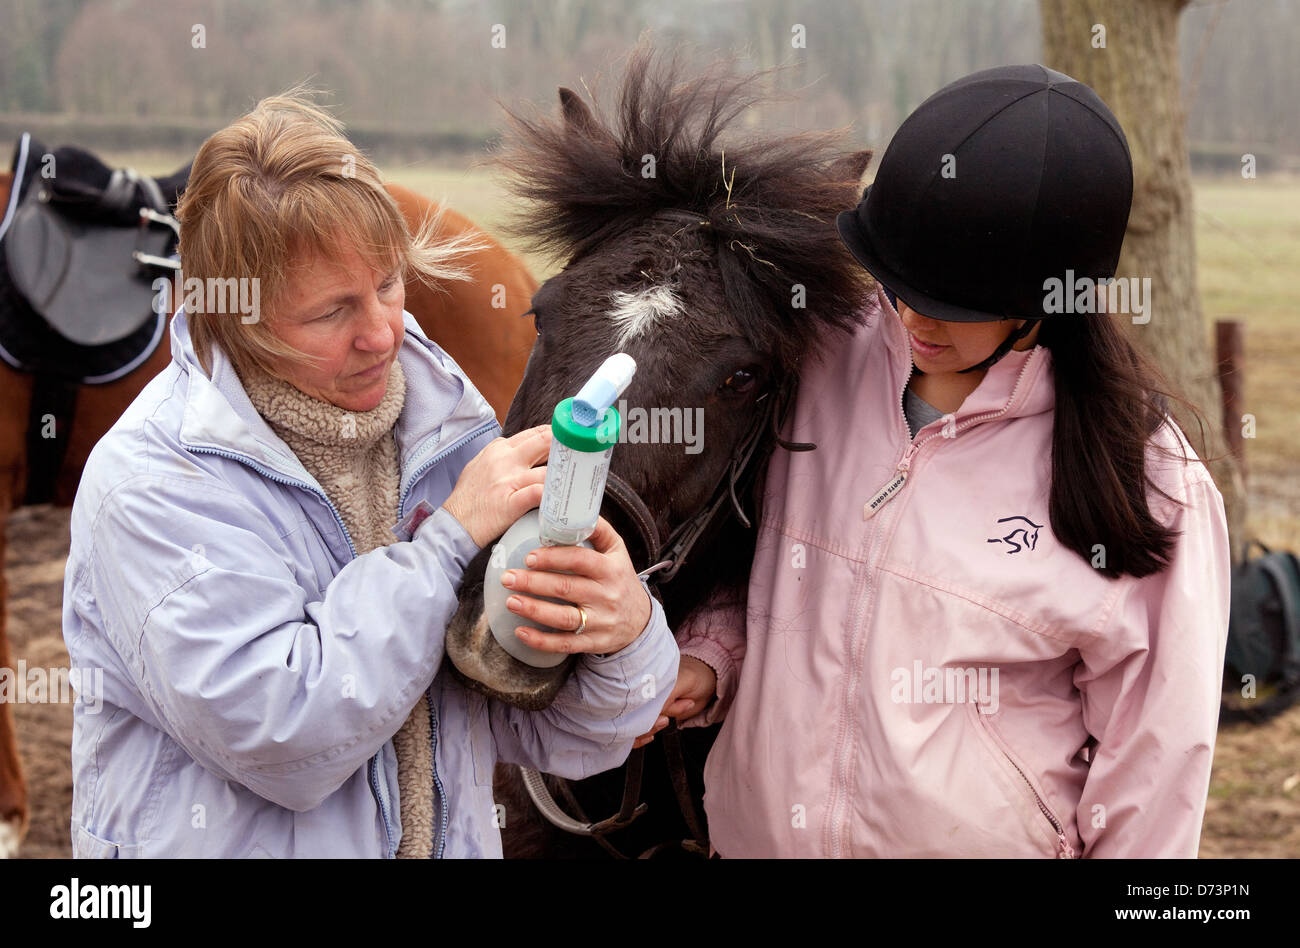 An owner giving her horse an asthma inhaler medication for treatment, UK - Stock Image